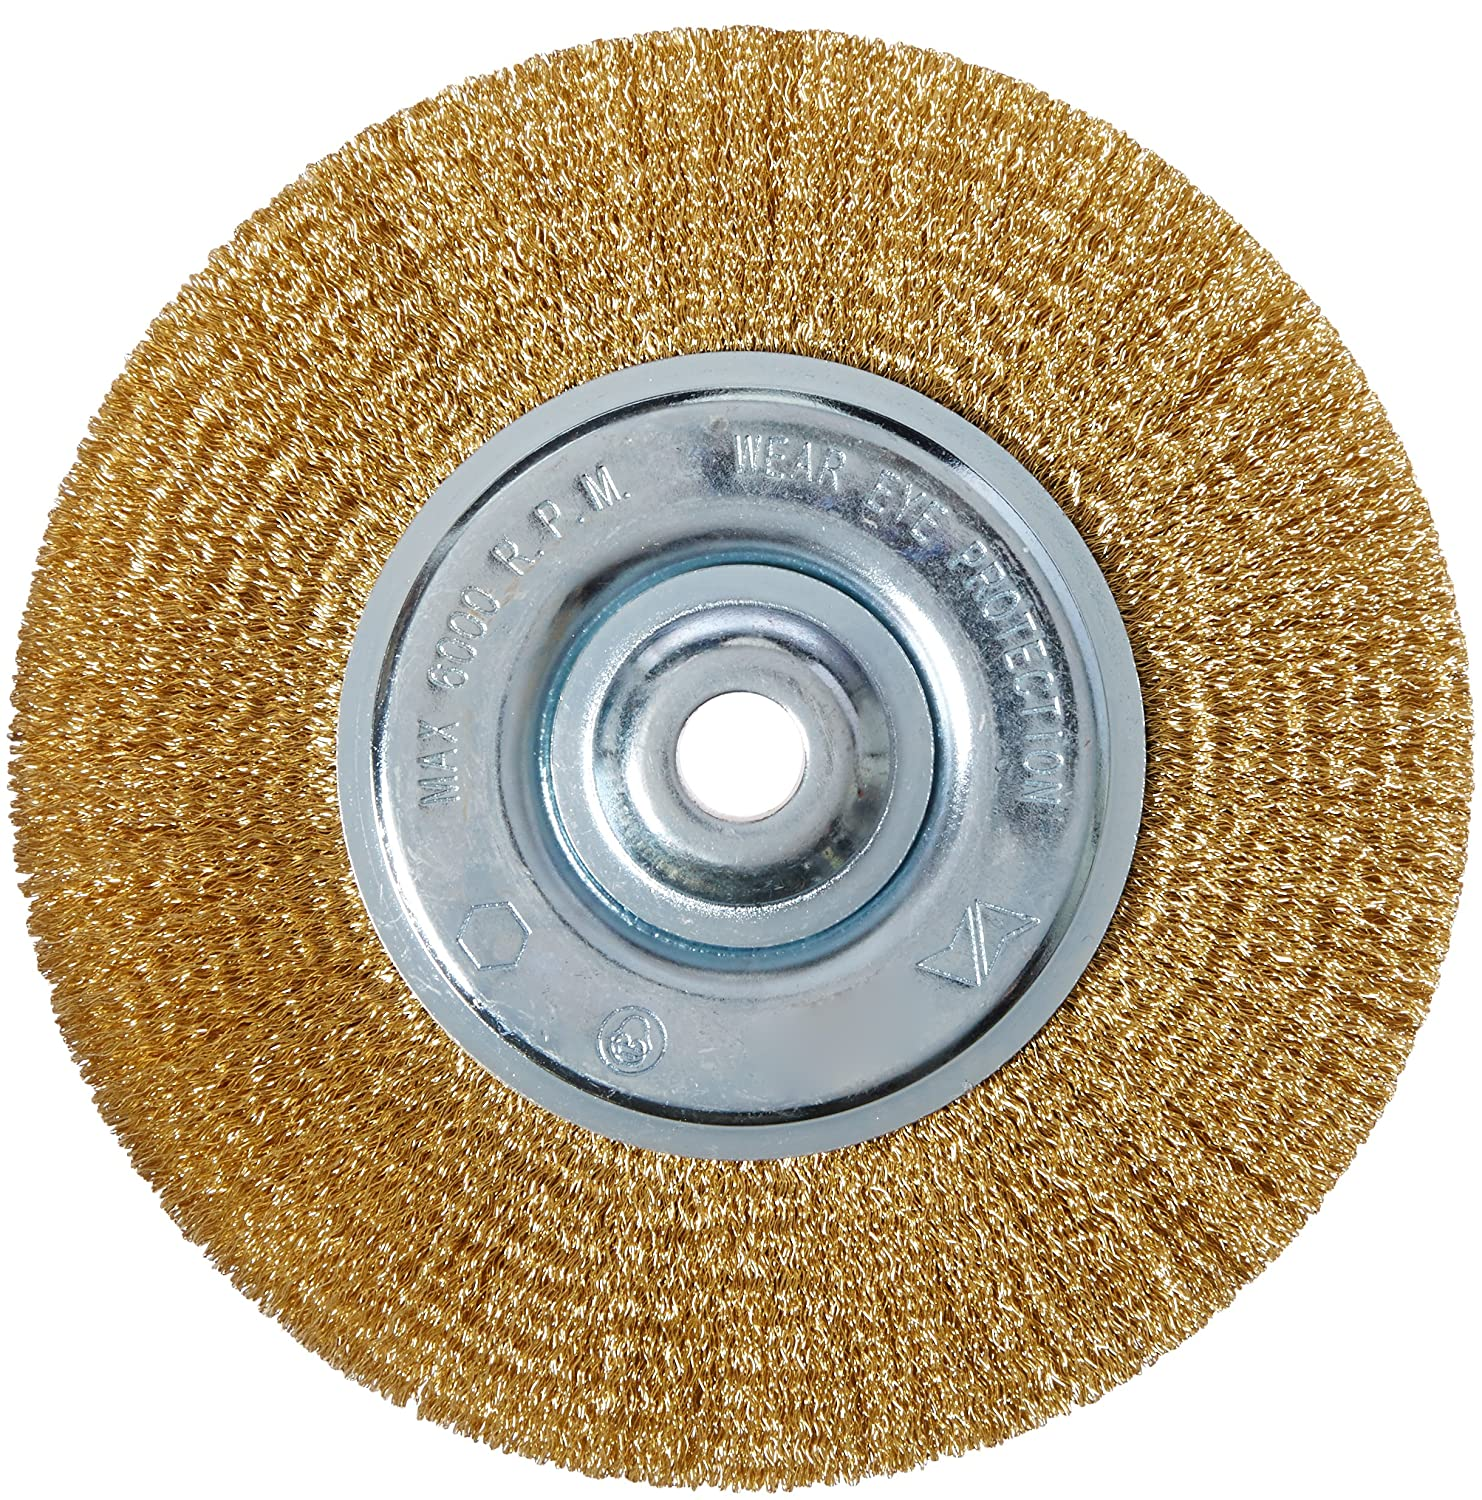 Vermont American 16802 6-Inch Fine Brass Wire Wheel Brush with 1/4-Inch Hex Shank for Drill